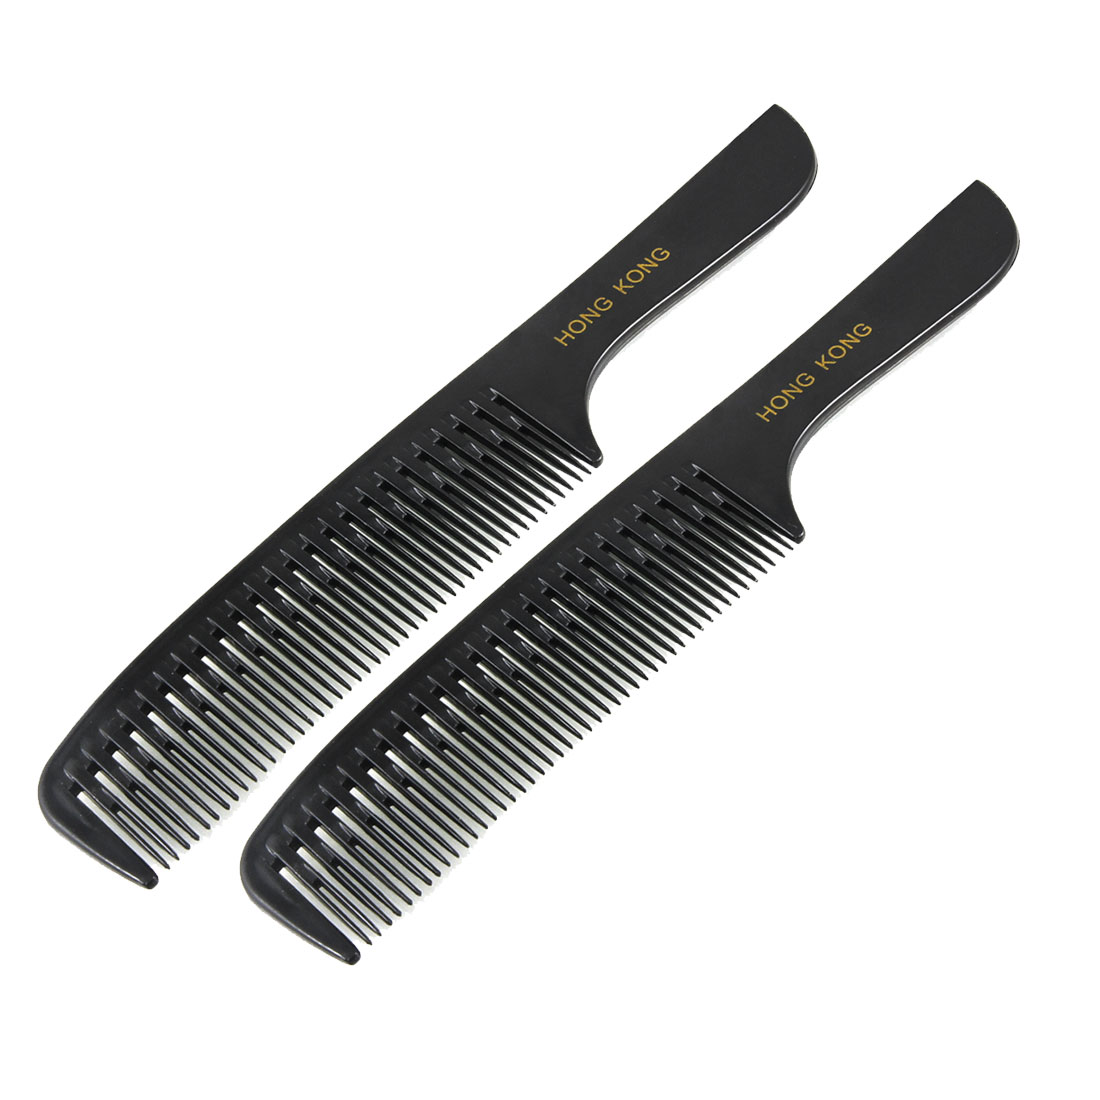 "Lady Hairstyle DIY Black Plastic Curly Hair Care Handgrip Comb 8.3"" 2 Pcs"